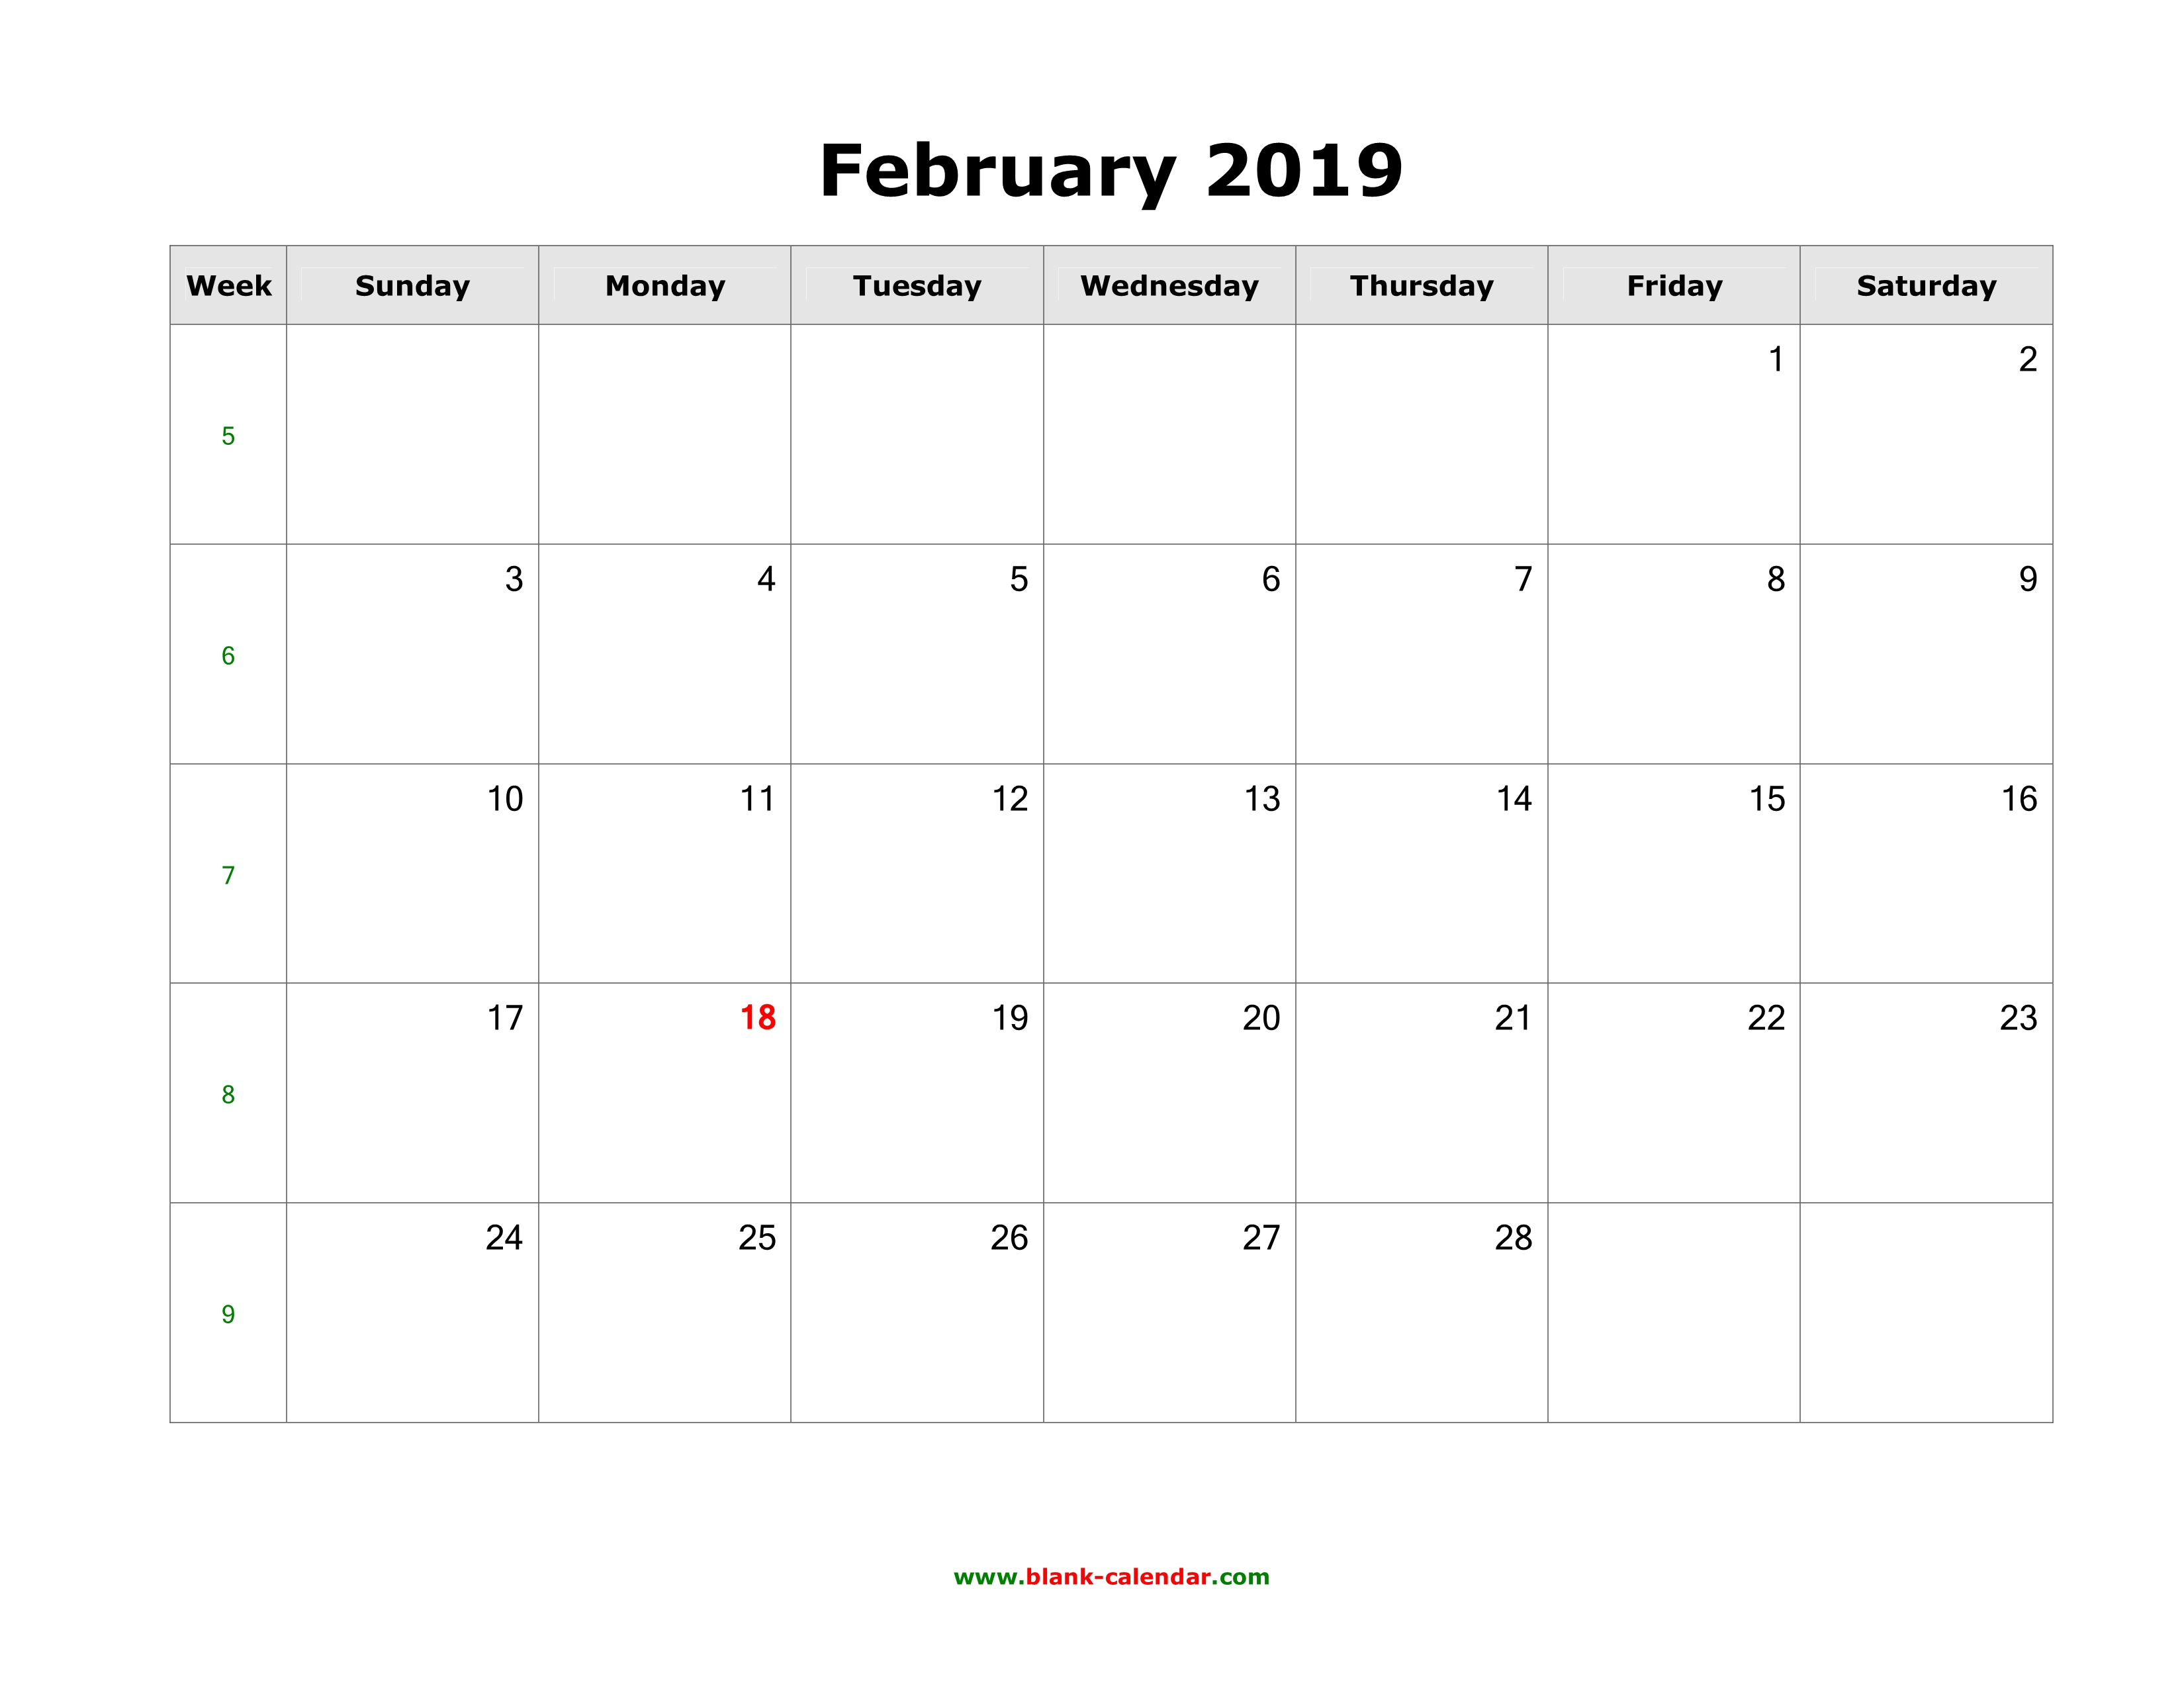 February 2019 Calendar With Bullets Download February 2019 Blank Calendar (horizontal)